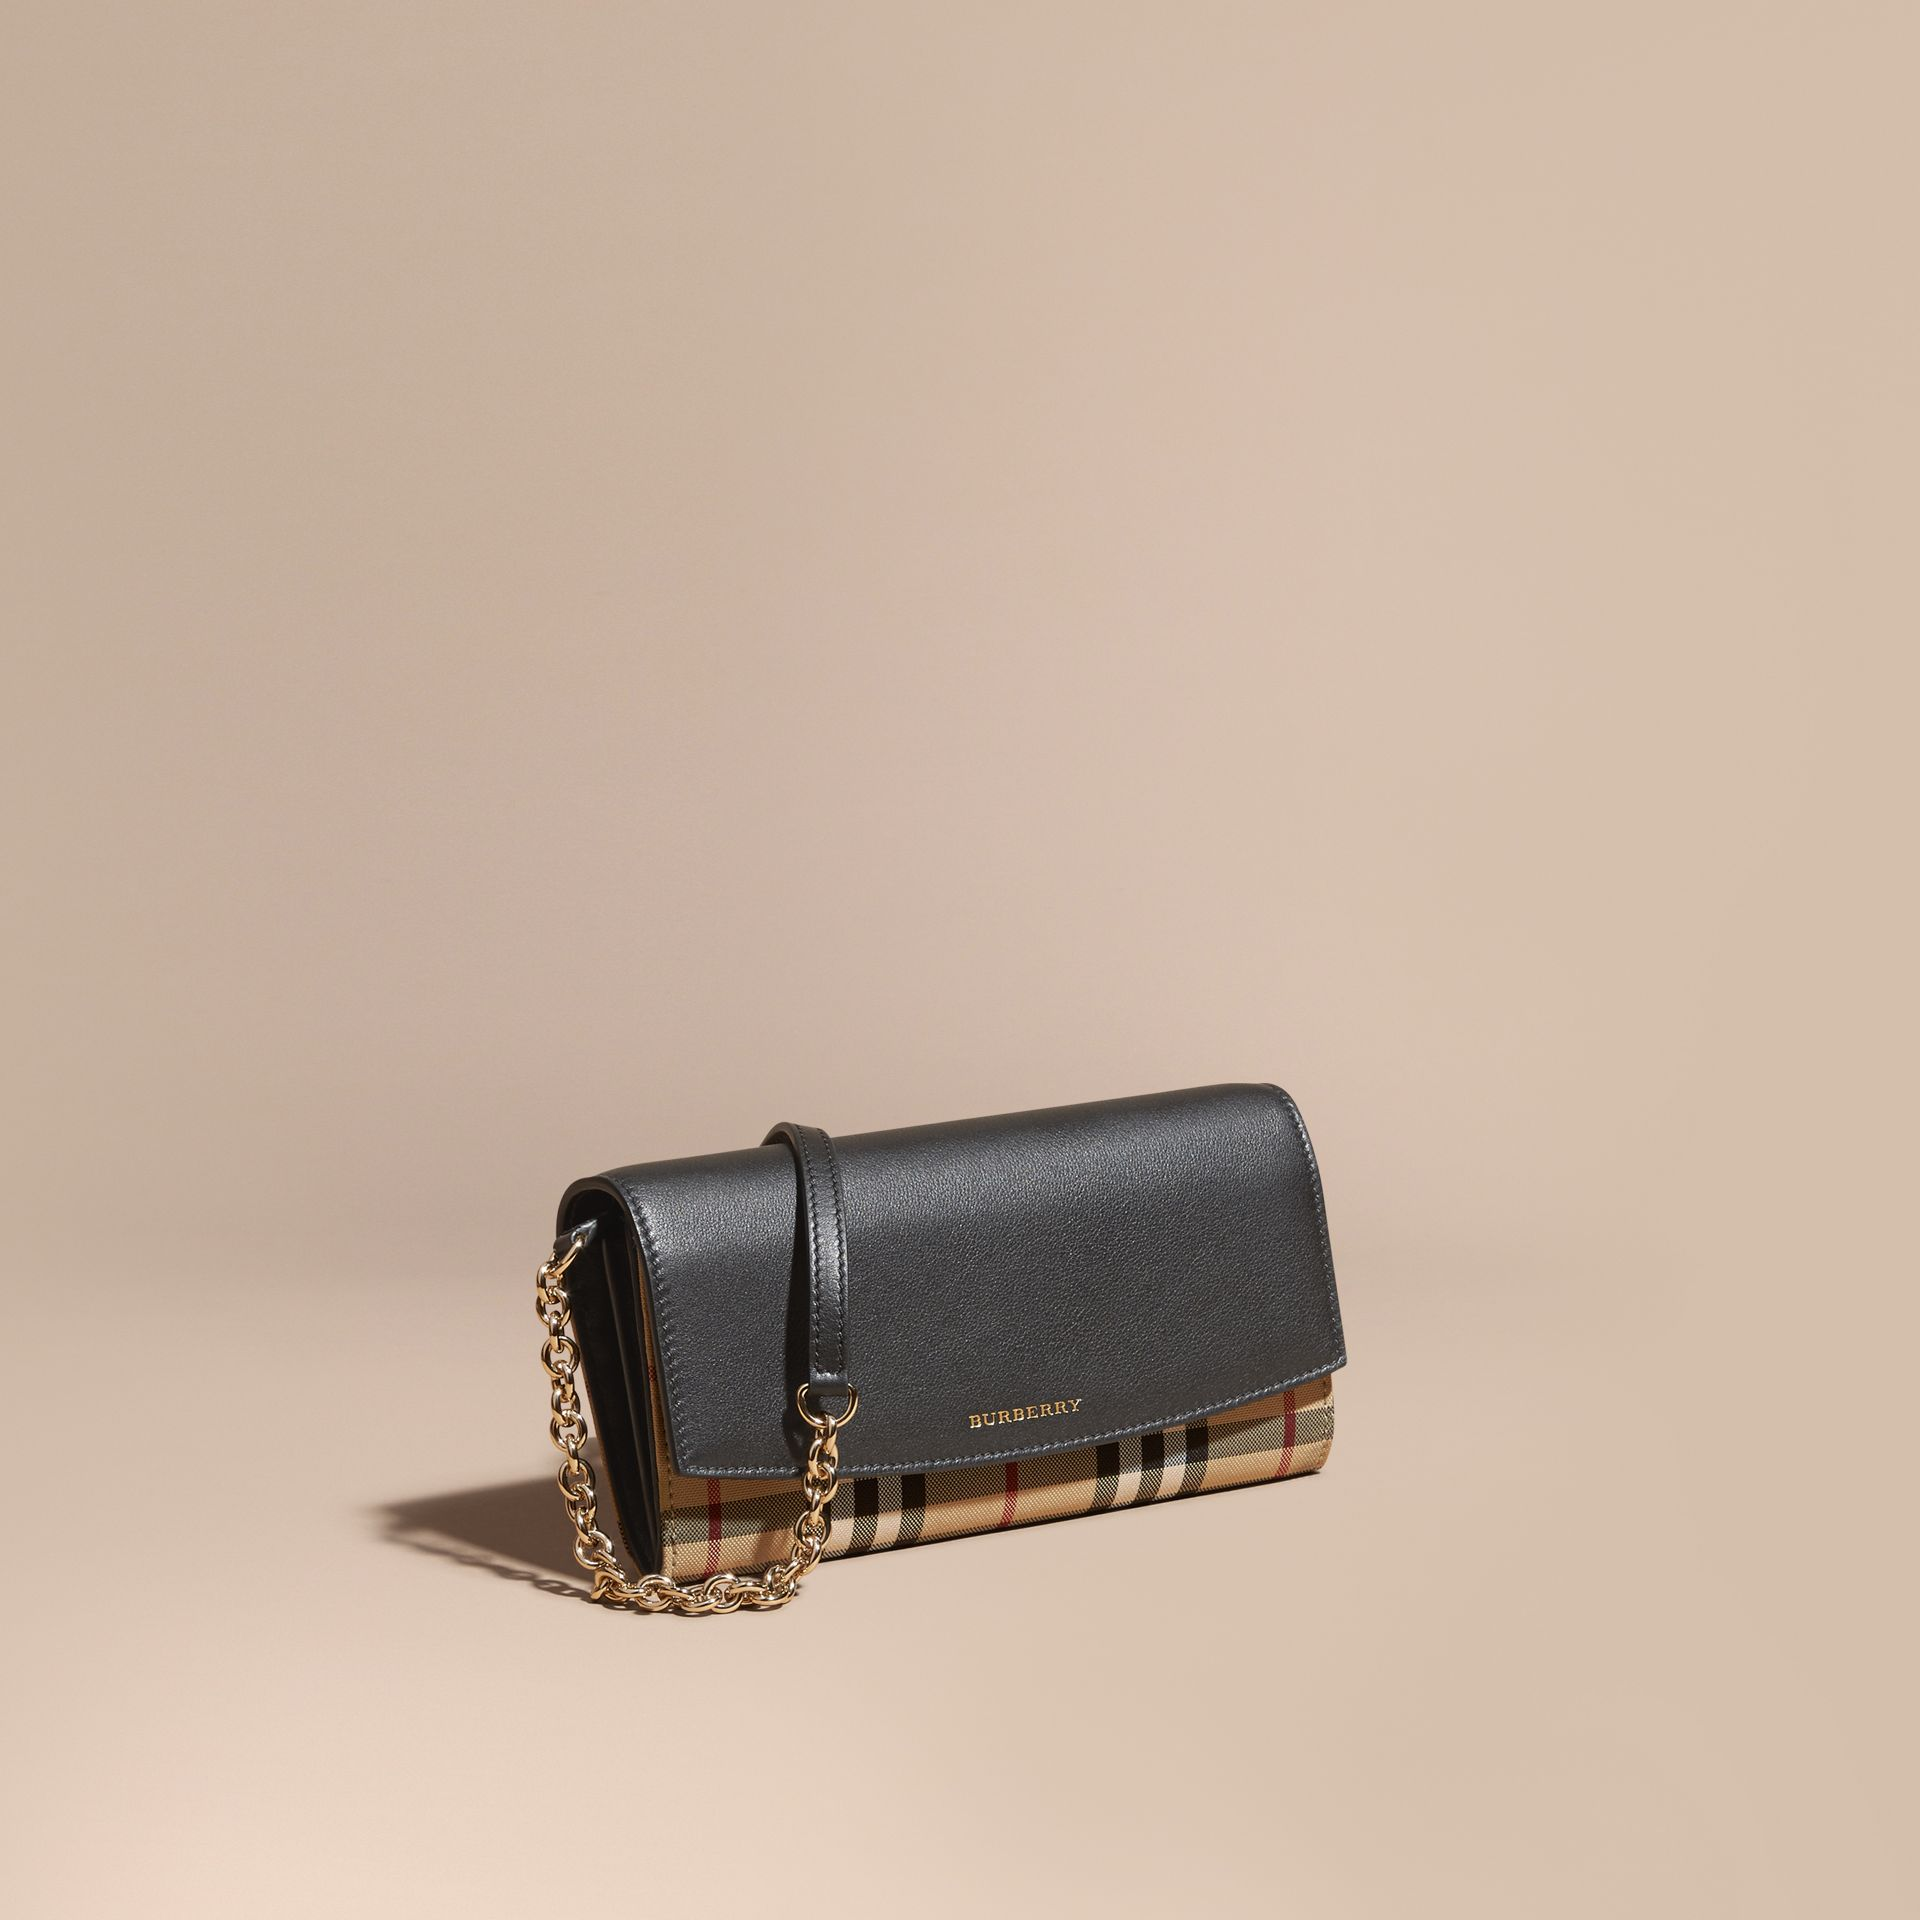 Horseferry Check and Leather Wallet with Chain in Black - Women | Burberry - gallery image 1